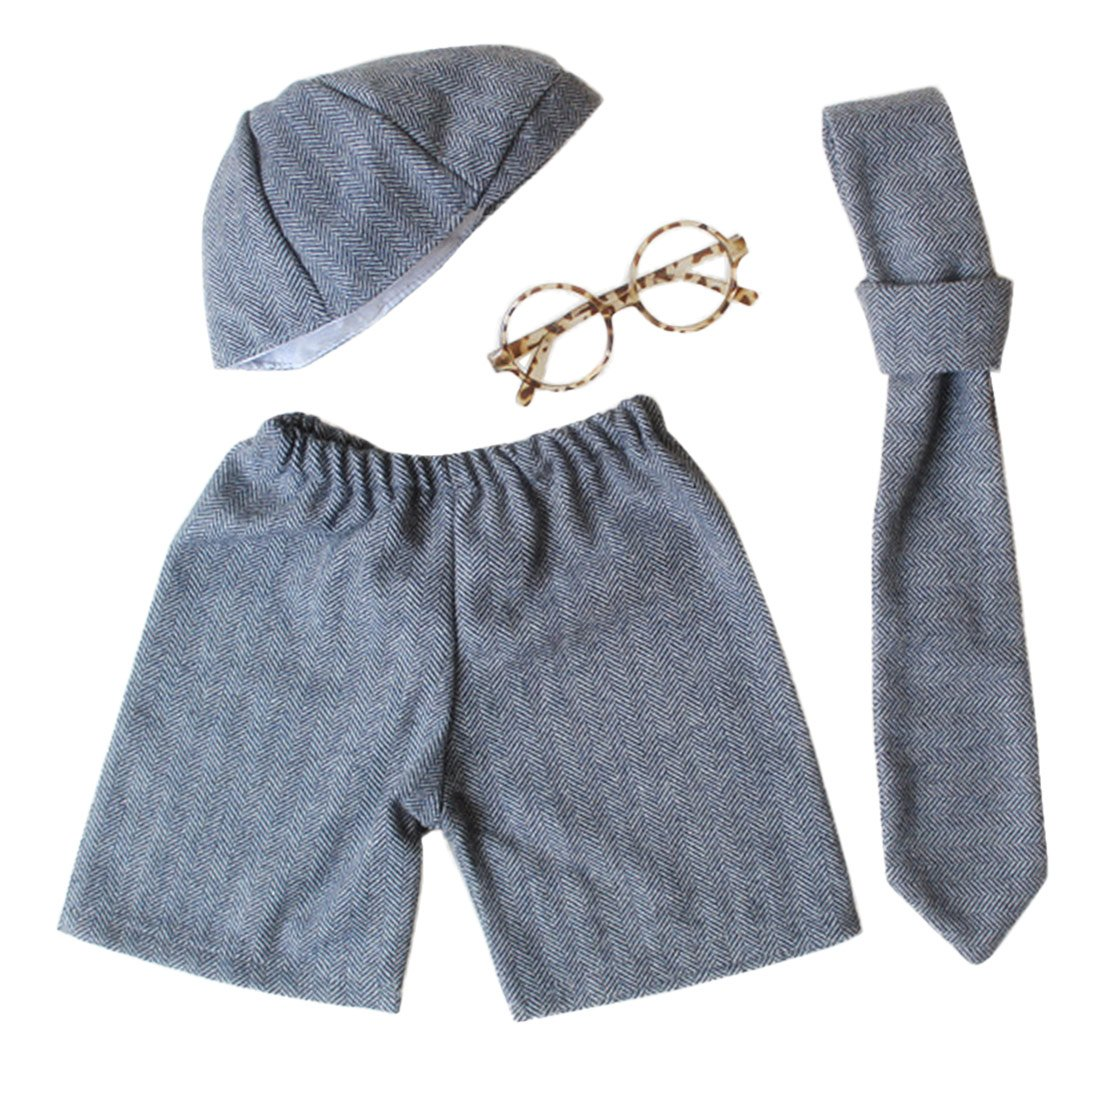 Newborn Boy's Gentry Photography Set Lovely Tie Shorts Polyester Costume with Glasses 4pcs